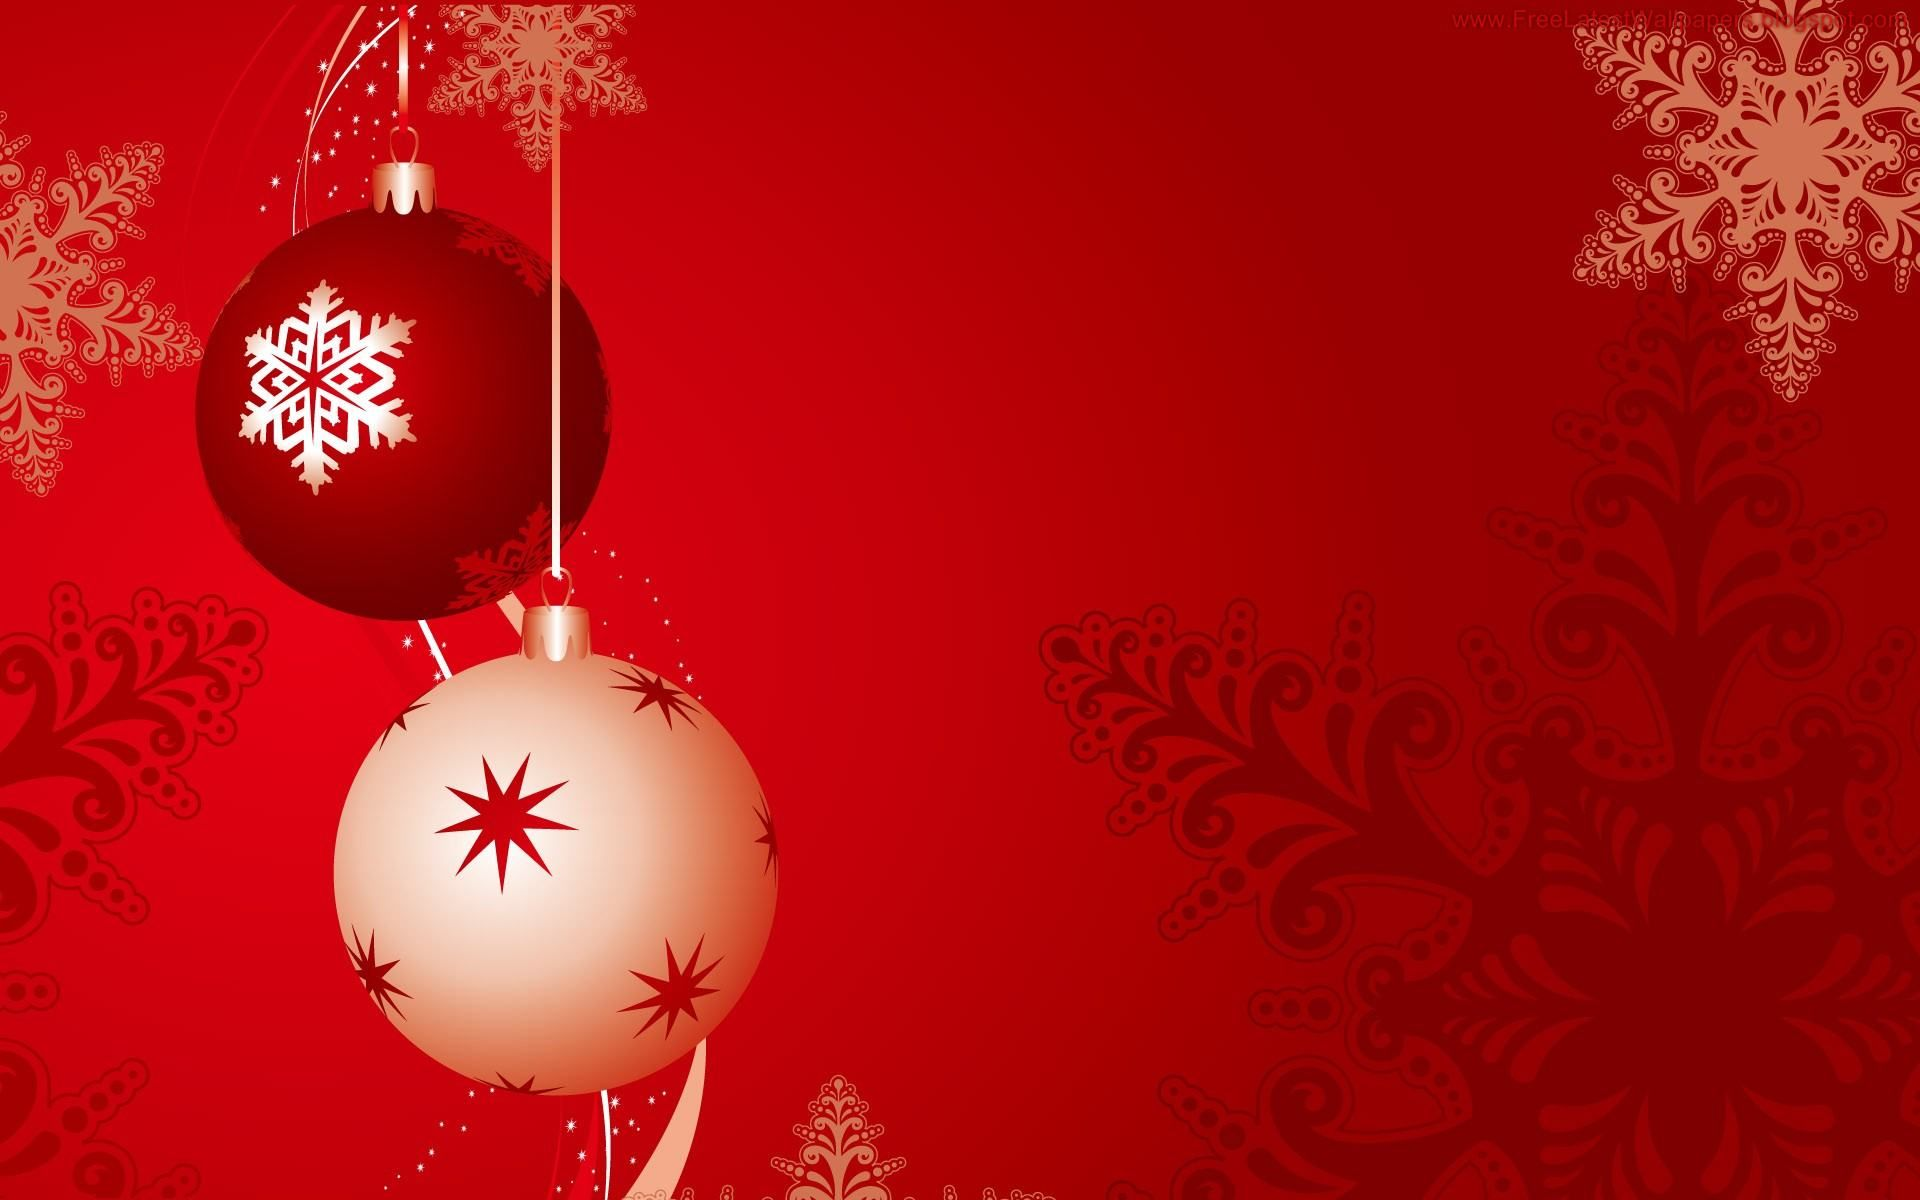 Change Christmas Wallpapers Christmas Wallpapers Backgrounds Download Free C Christmas Card Background Christmas Wallpaper Free Free Christmas Backgrounds